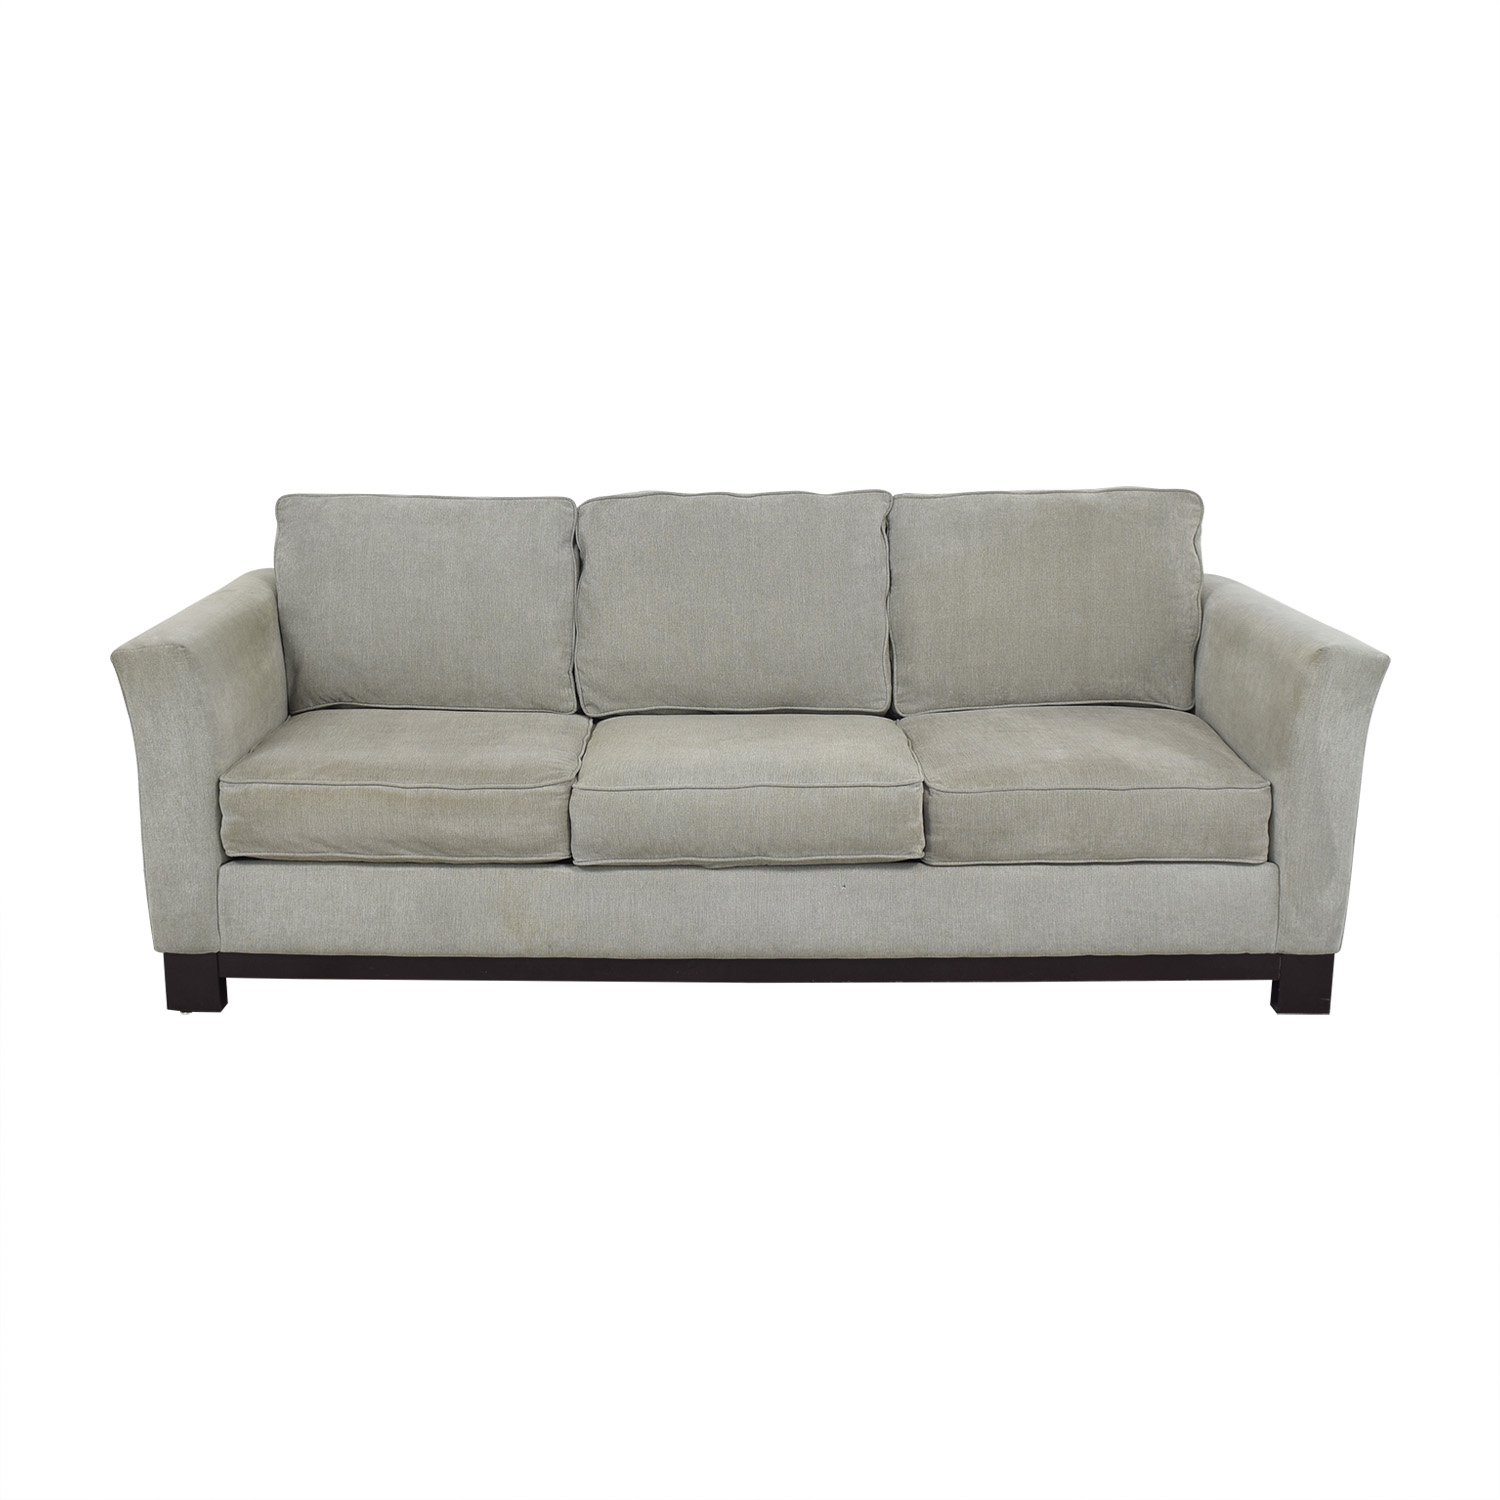 Jonathan Louis Three Seat Sofa Jonathan Louis